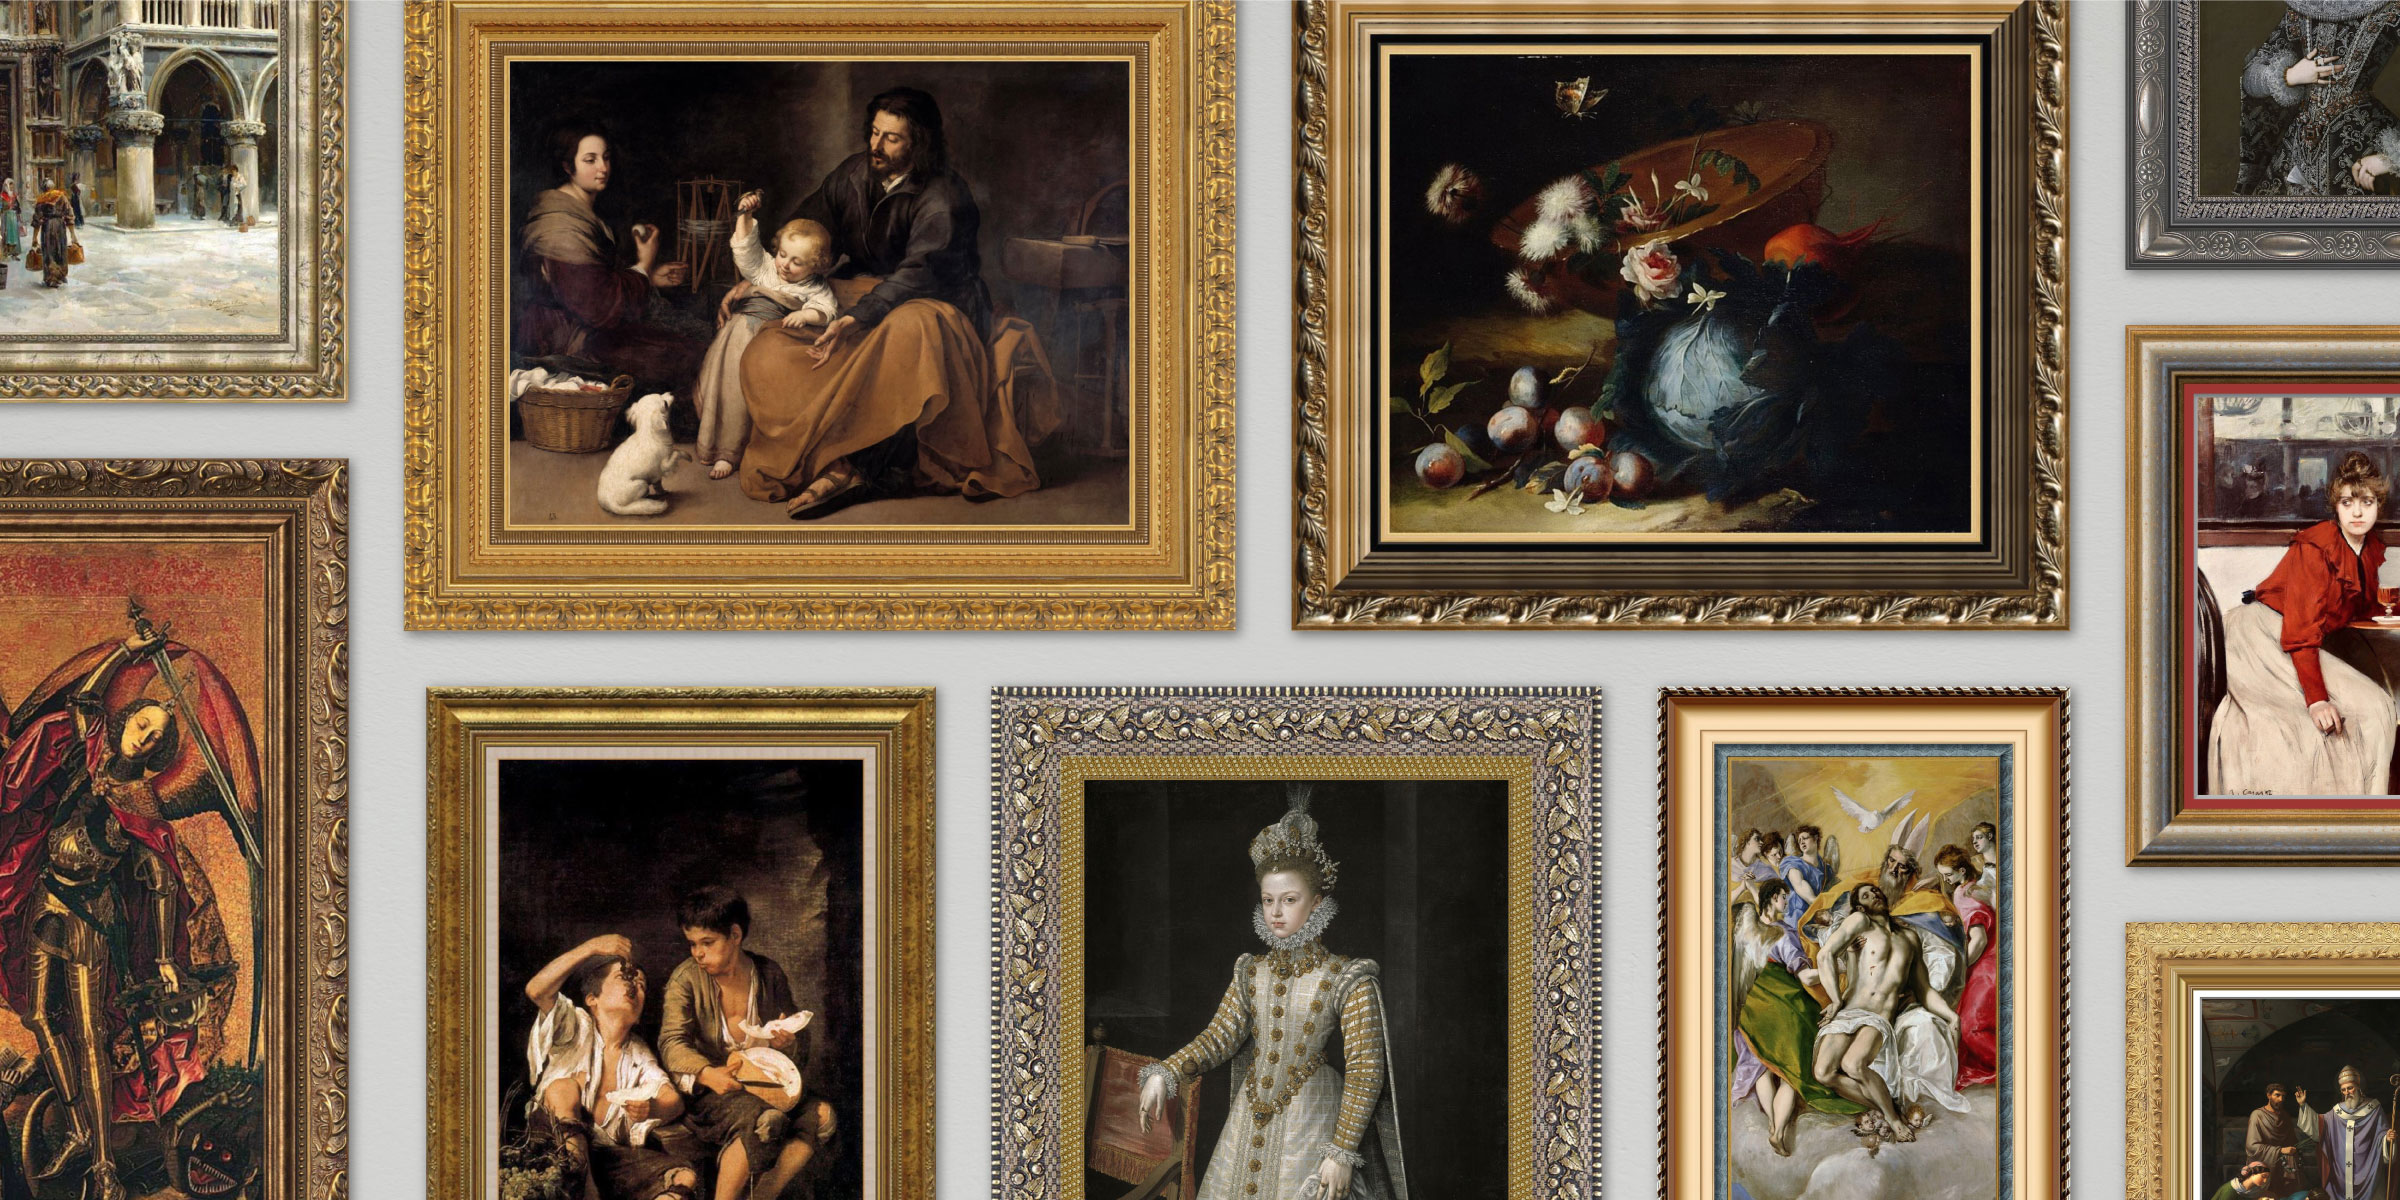 Framed paintings of the Renaissance and Baroque era.